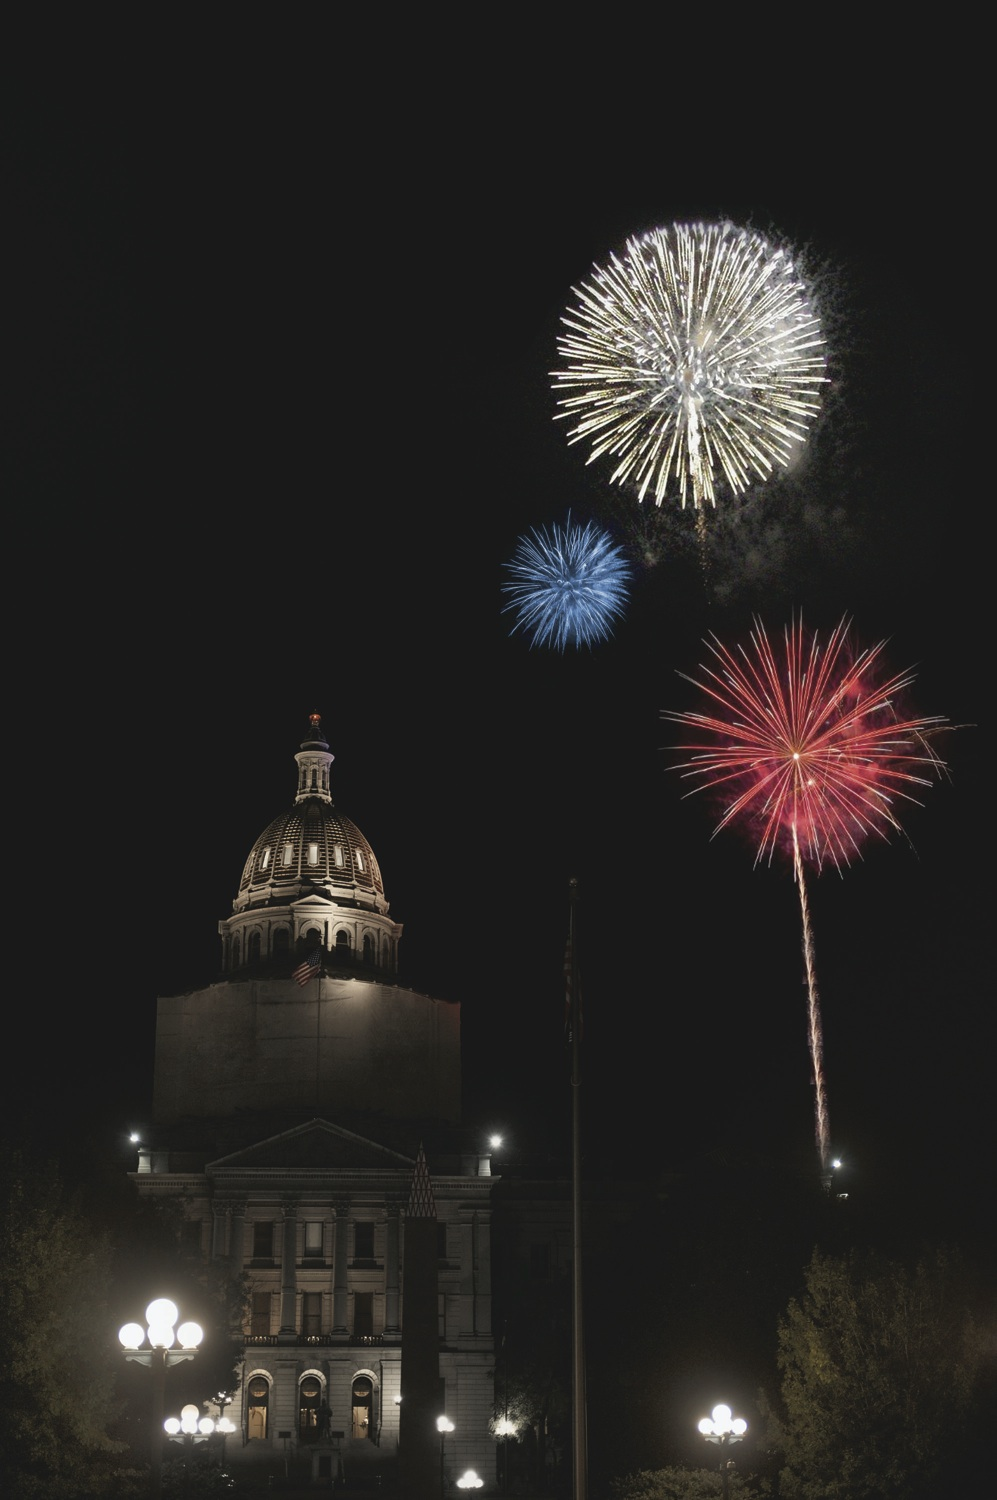 Thrifty Auto Sales >> Fireworks Are Here! | Our Thrifty Nickel Blog